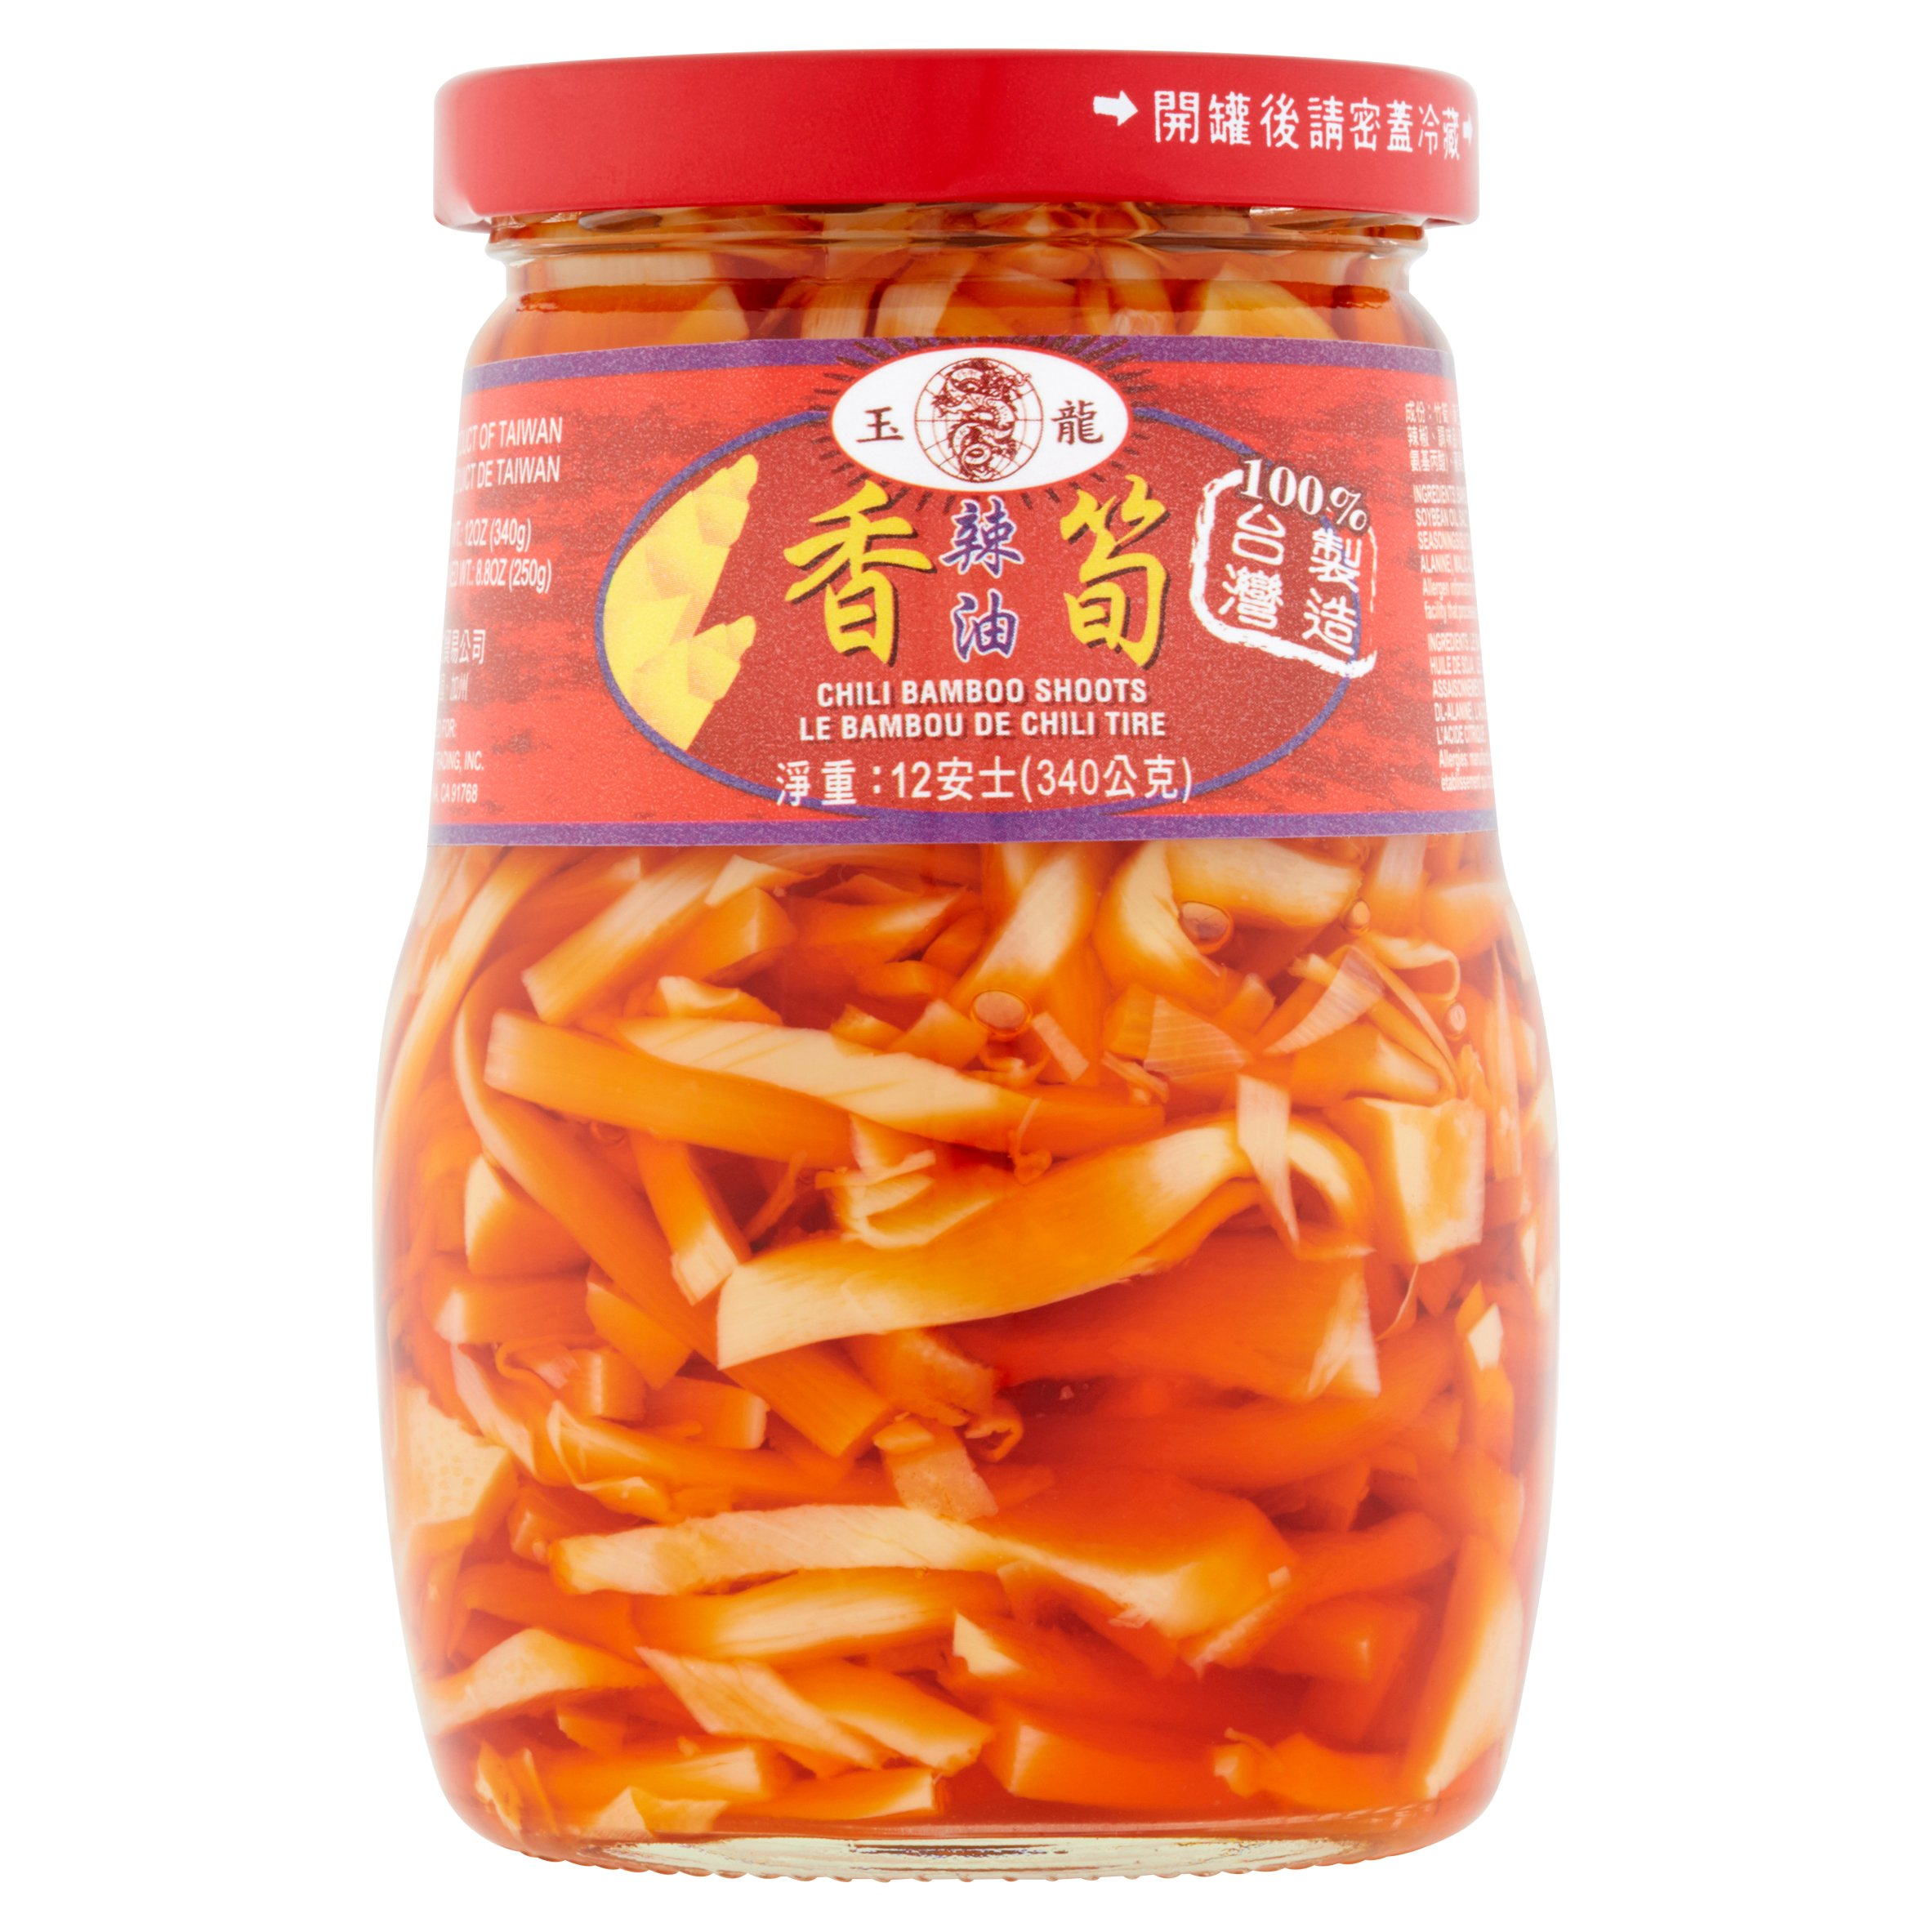 medium roxy chili bamboo shoots in soybean oil 12 oz RCn9ERg1e